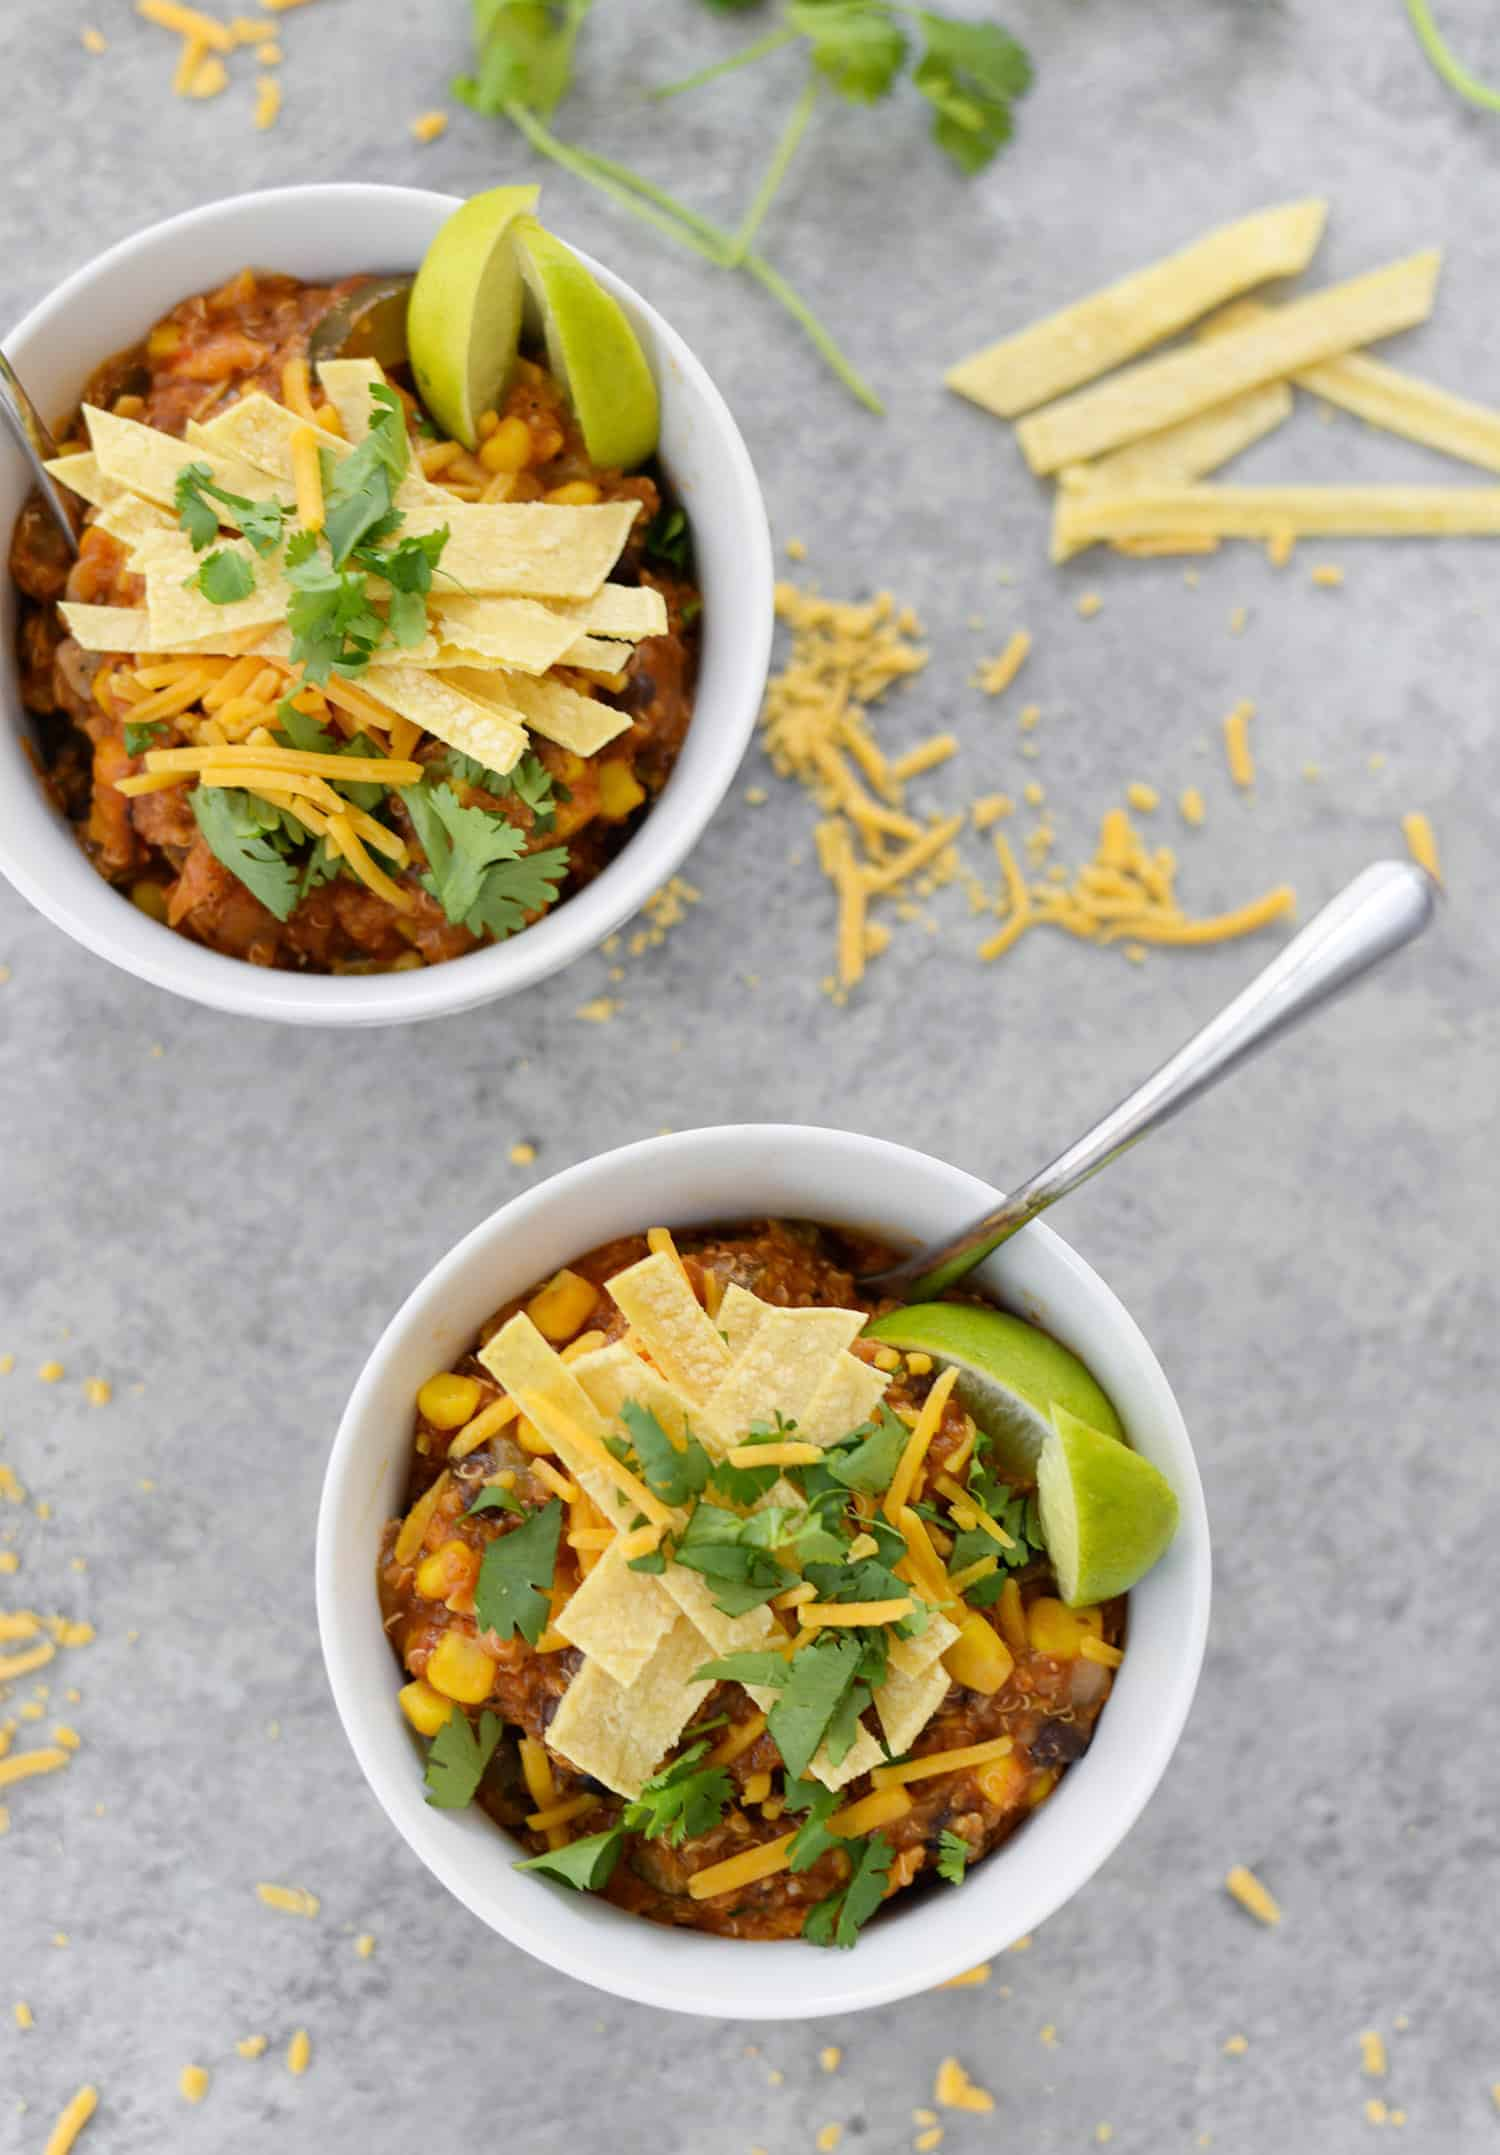 Instant Pot Enchilada Casserole. Yummy, vegetarian and gluten-free! Cooked quinoa, beans, corn and corn tortillas in a homemade enchilada sauce. Delicious! #mexican #dinner #recipe #healthy #glutenfree #vegetarian #quinoa #weeknight | www.delishknowledge.com